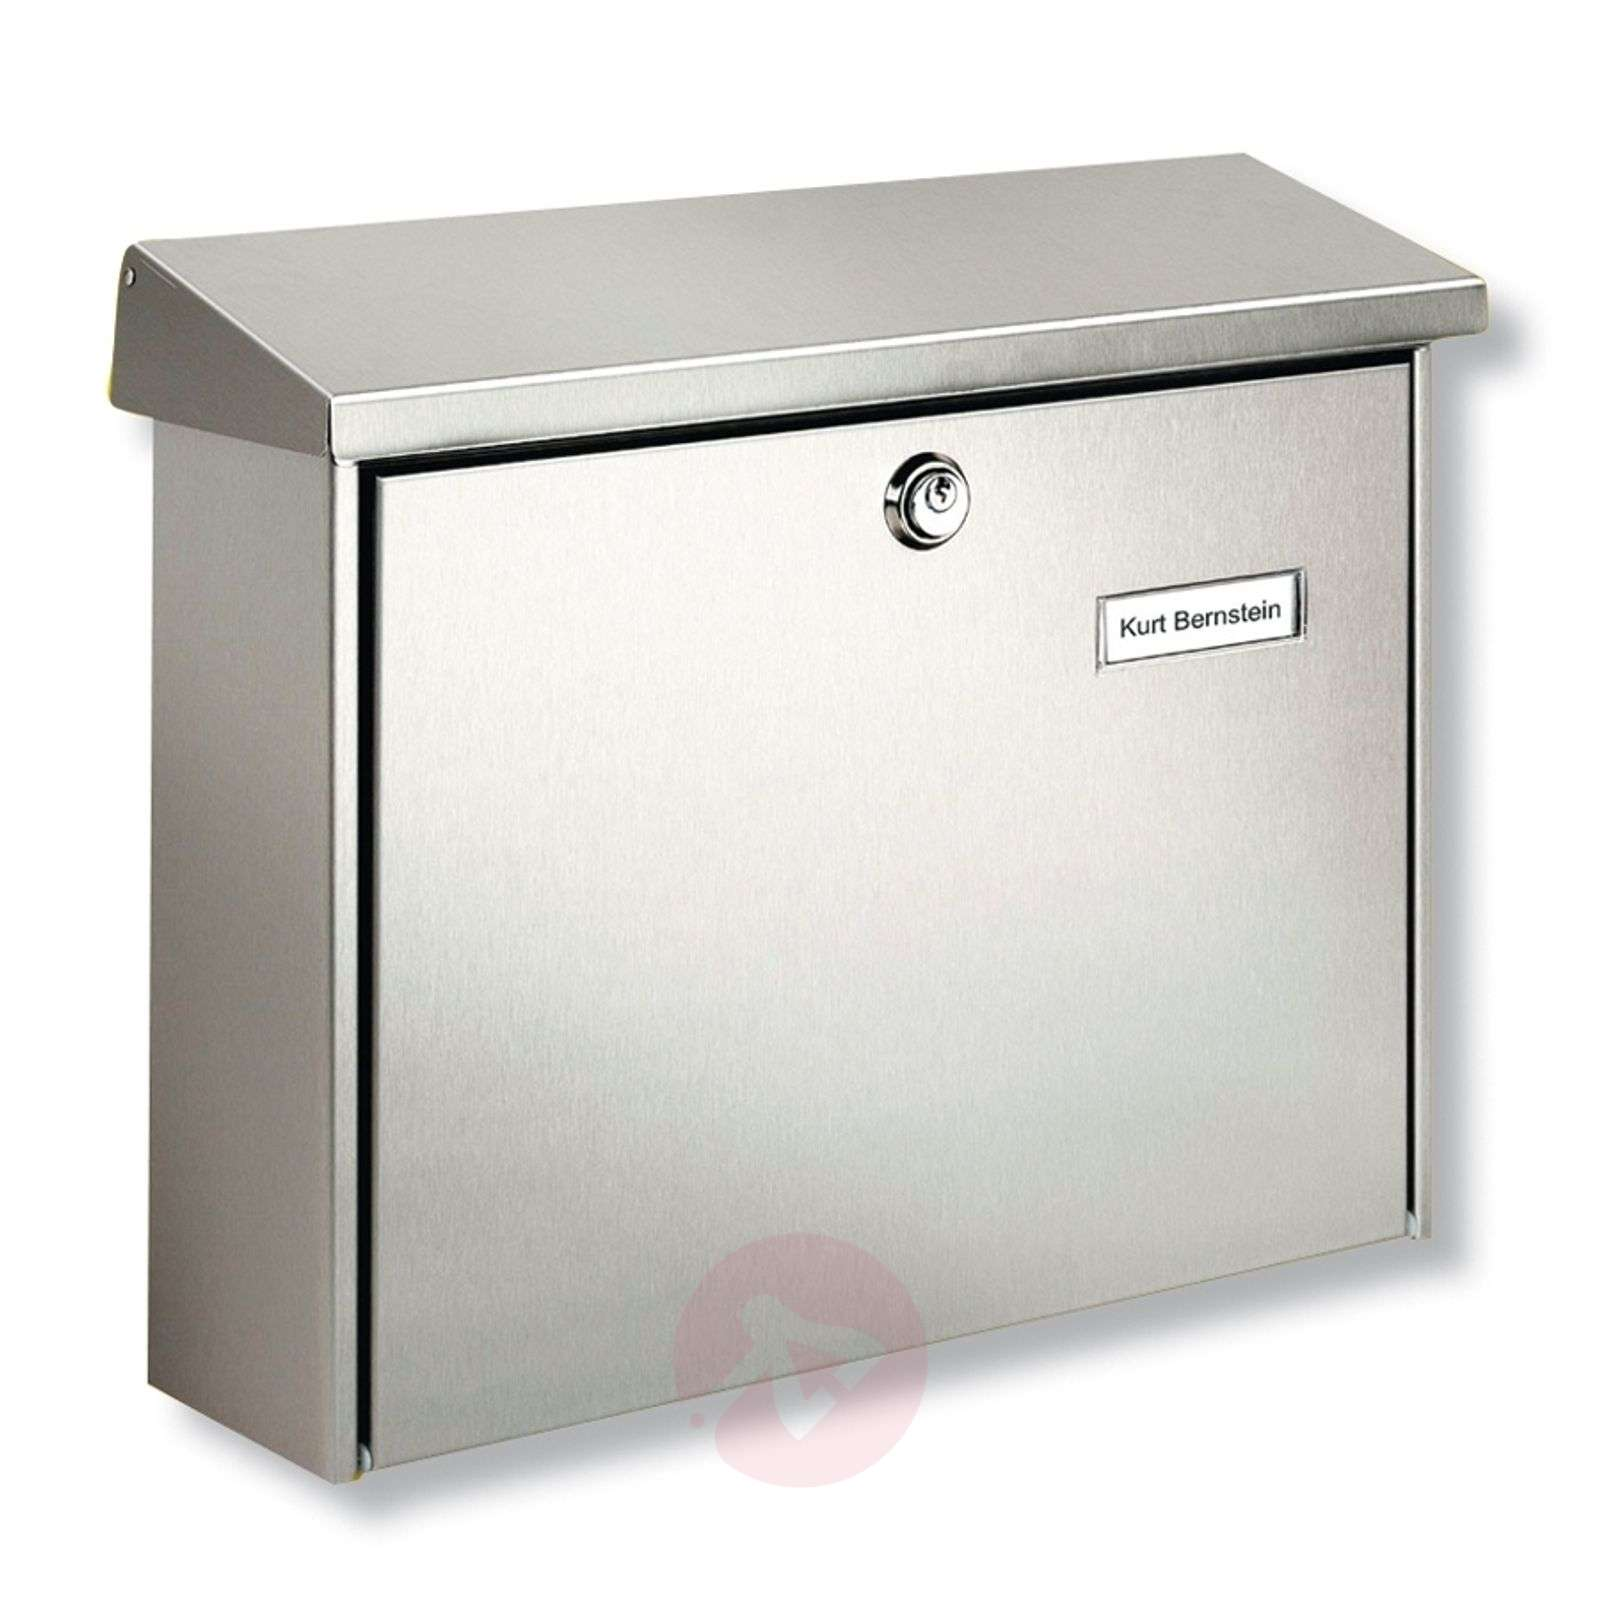 Amrum letter box with protective coating-1532029-01